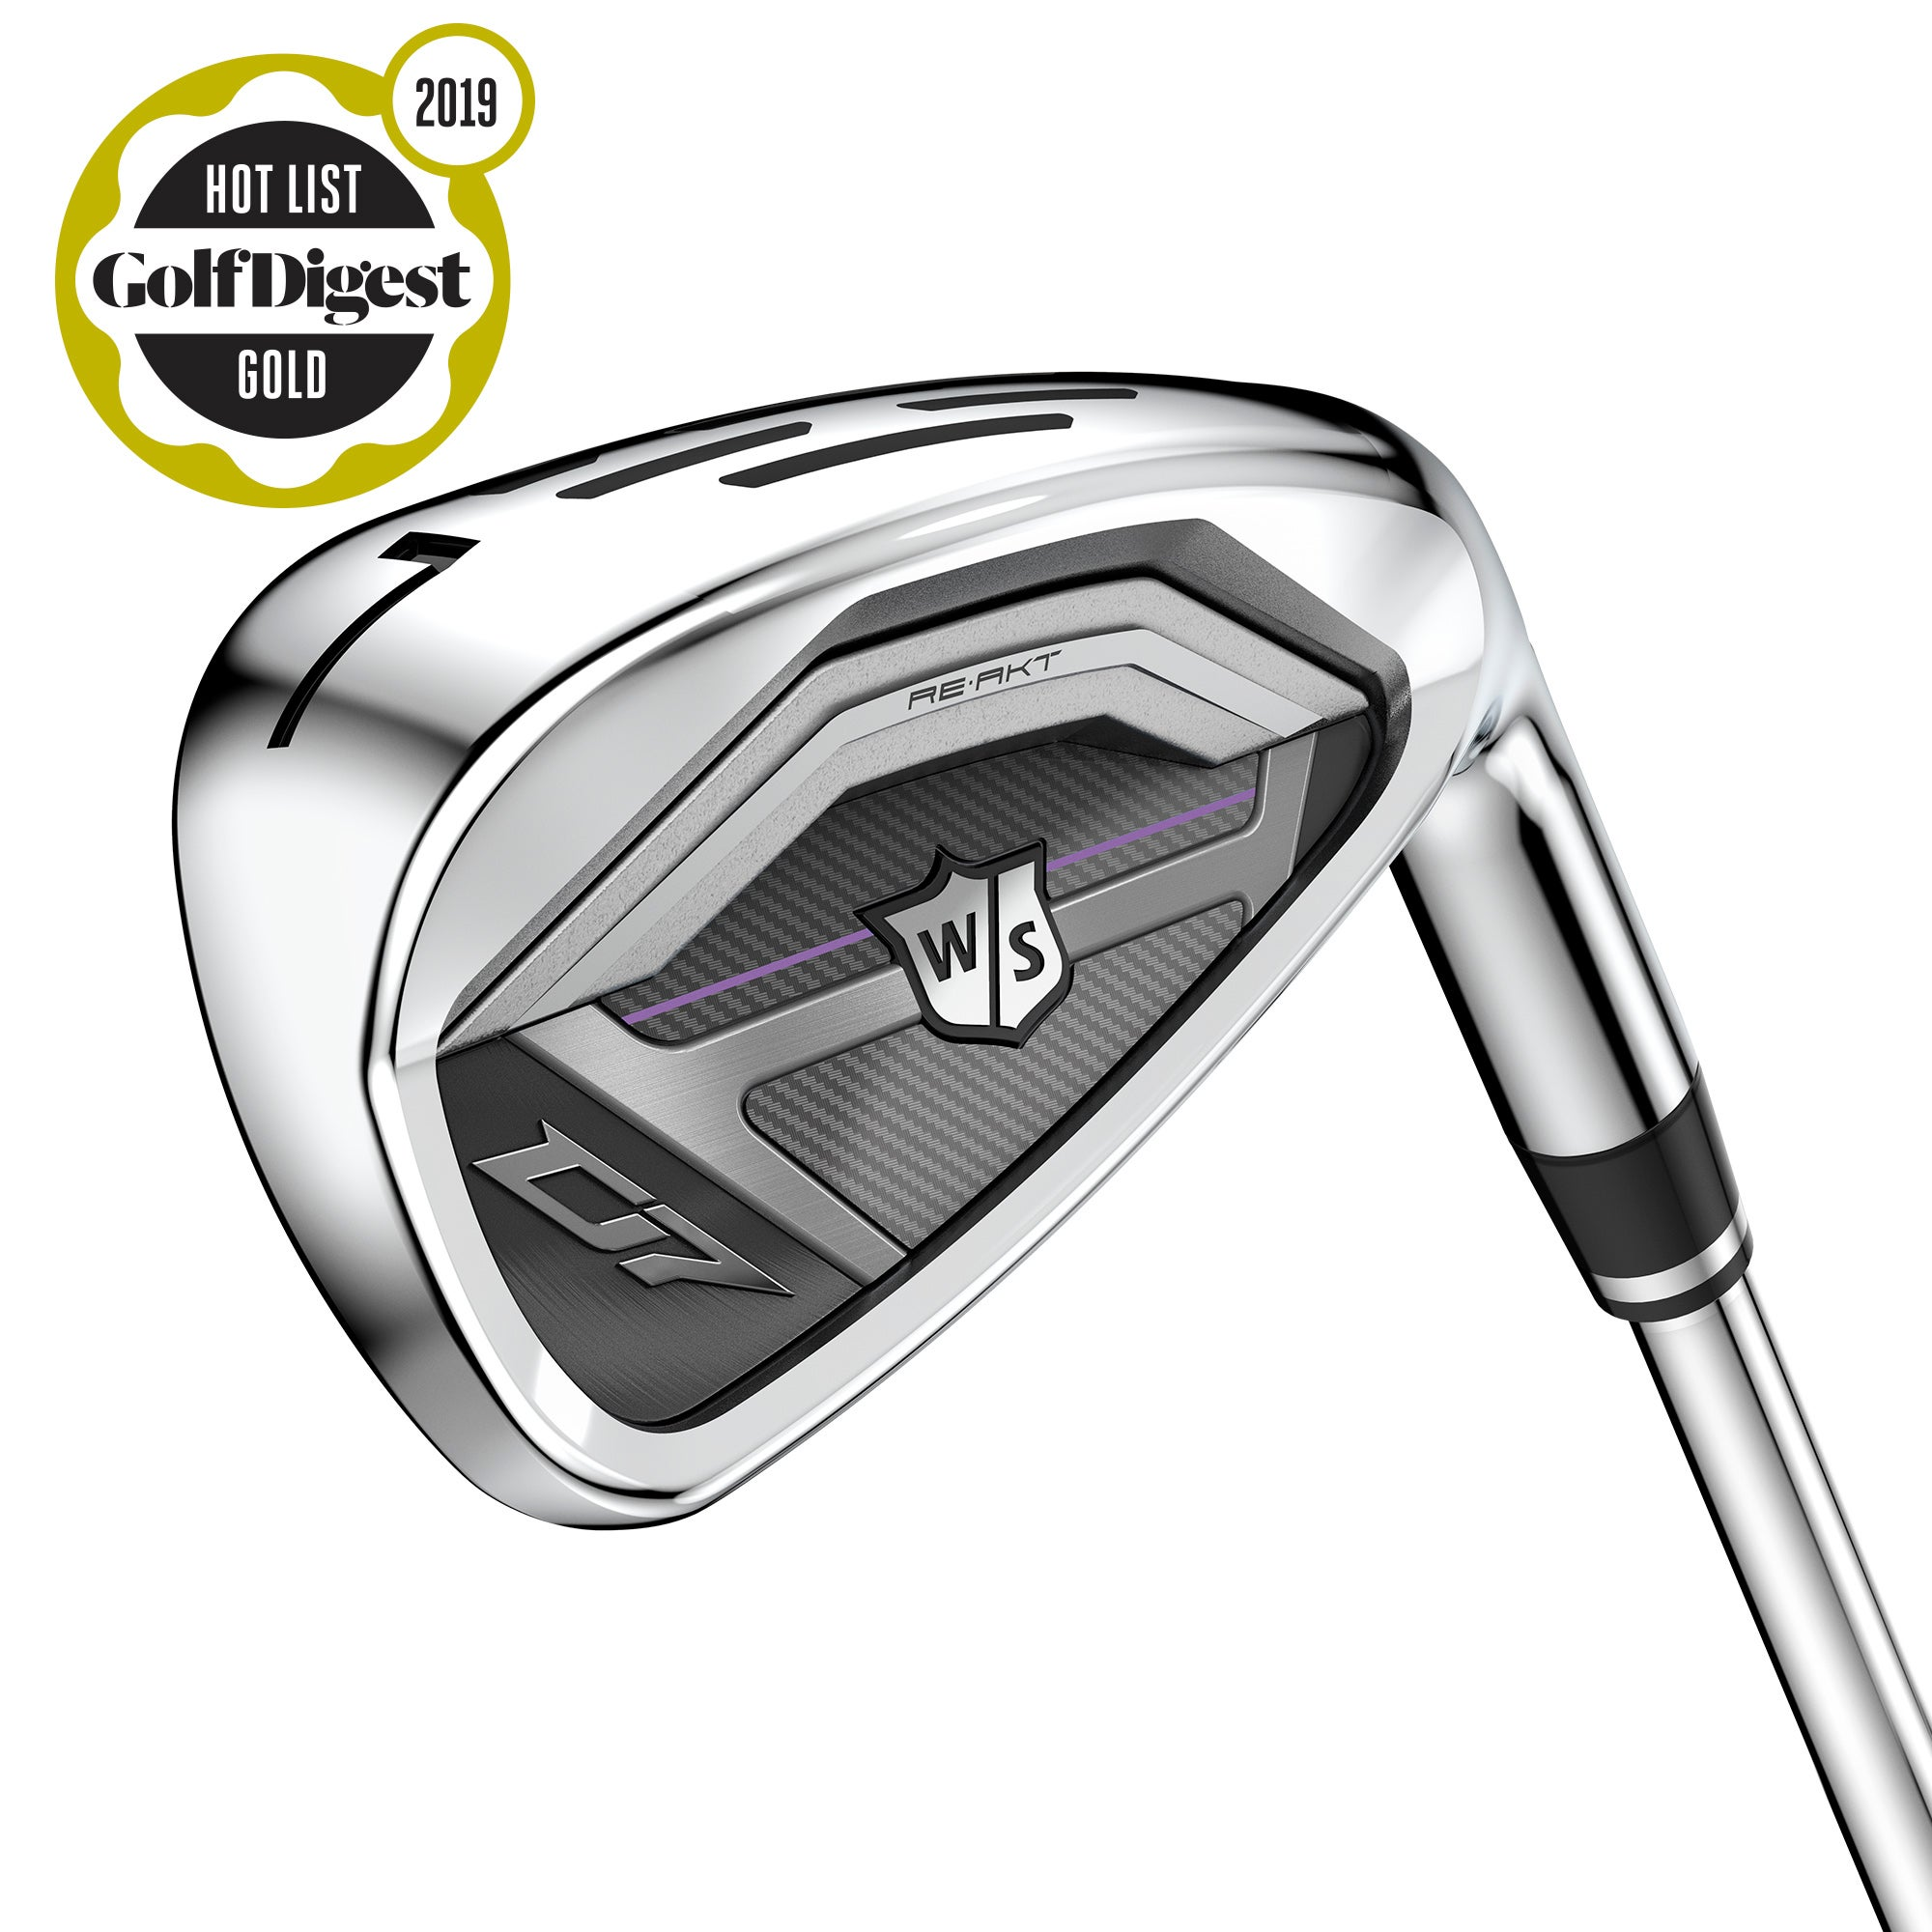 Wilson Staff D7 Women's Irons - Graphite, 5-PW, GW, RH